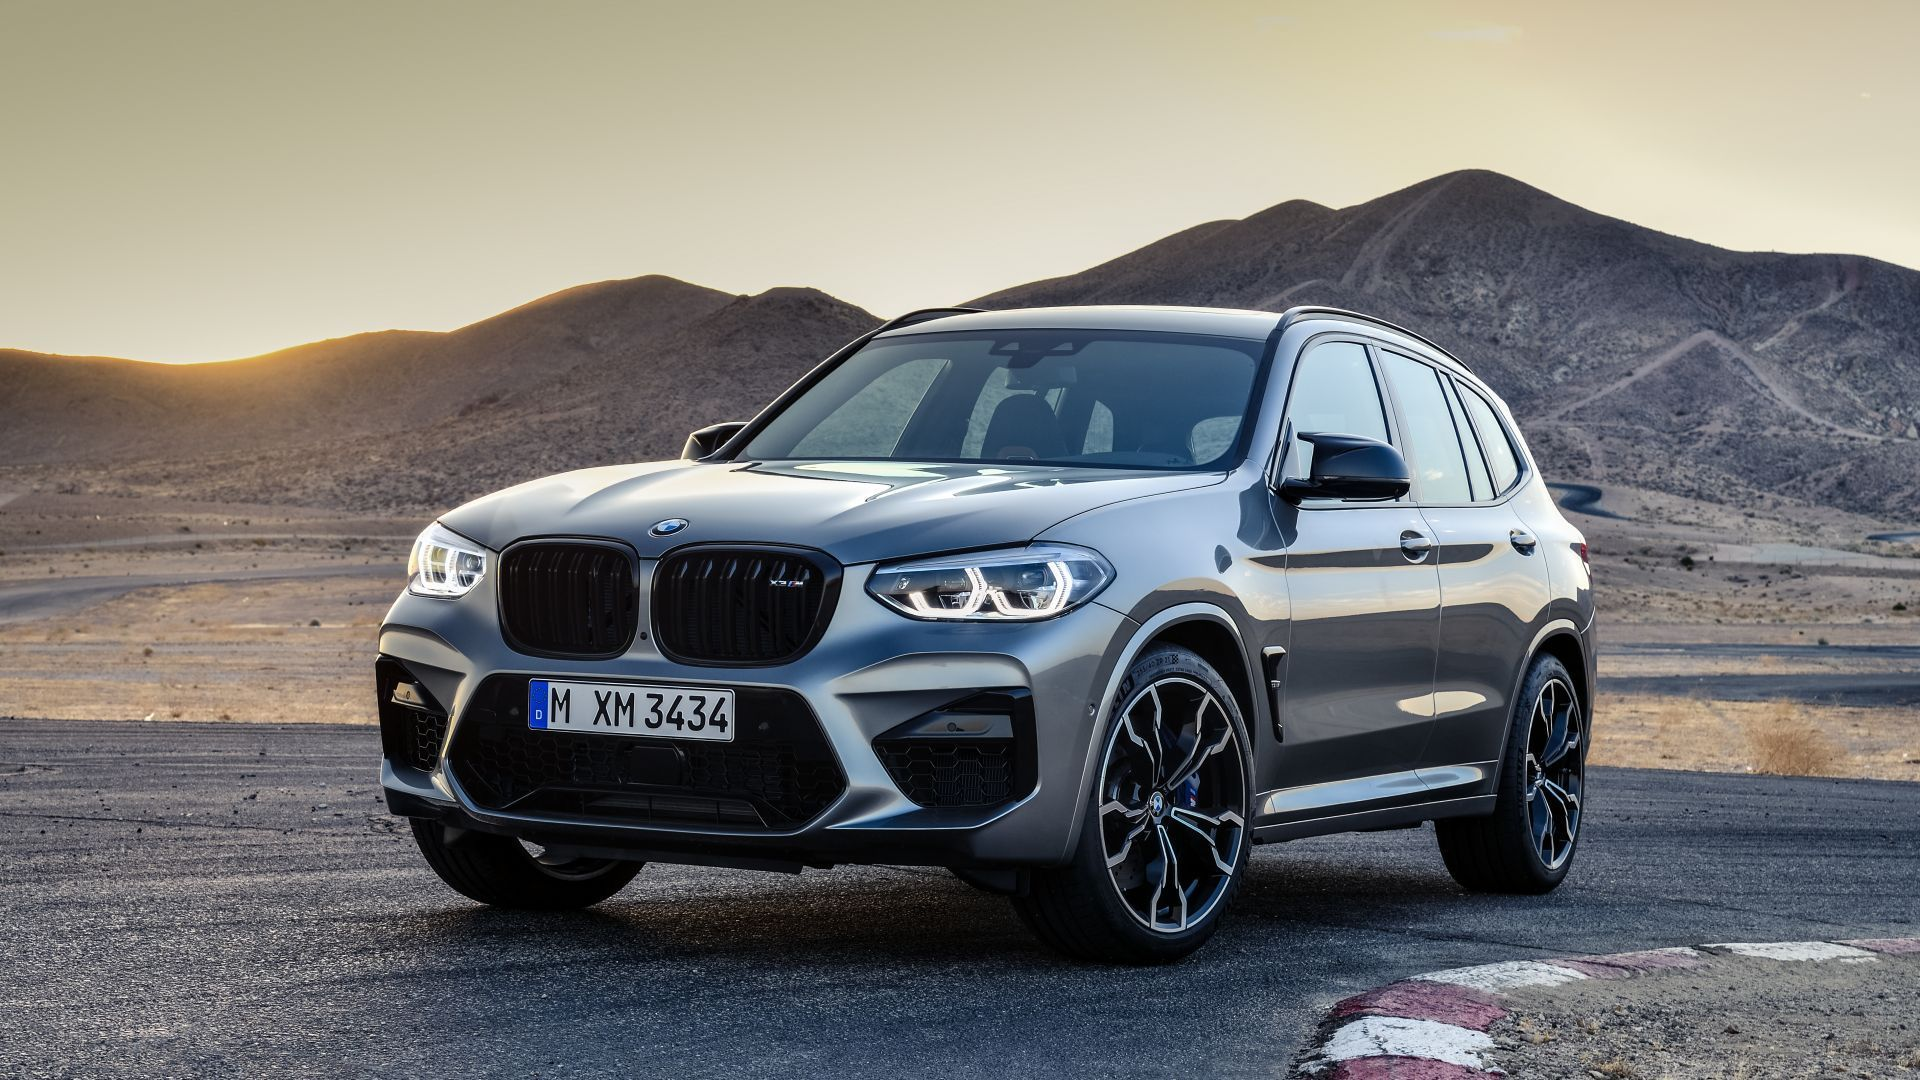 2021 Bmw X3 M Review In 2020 Bmw X3 Bmw Geneva Motor Show